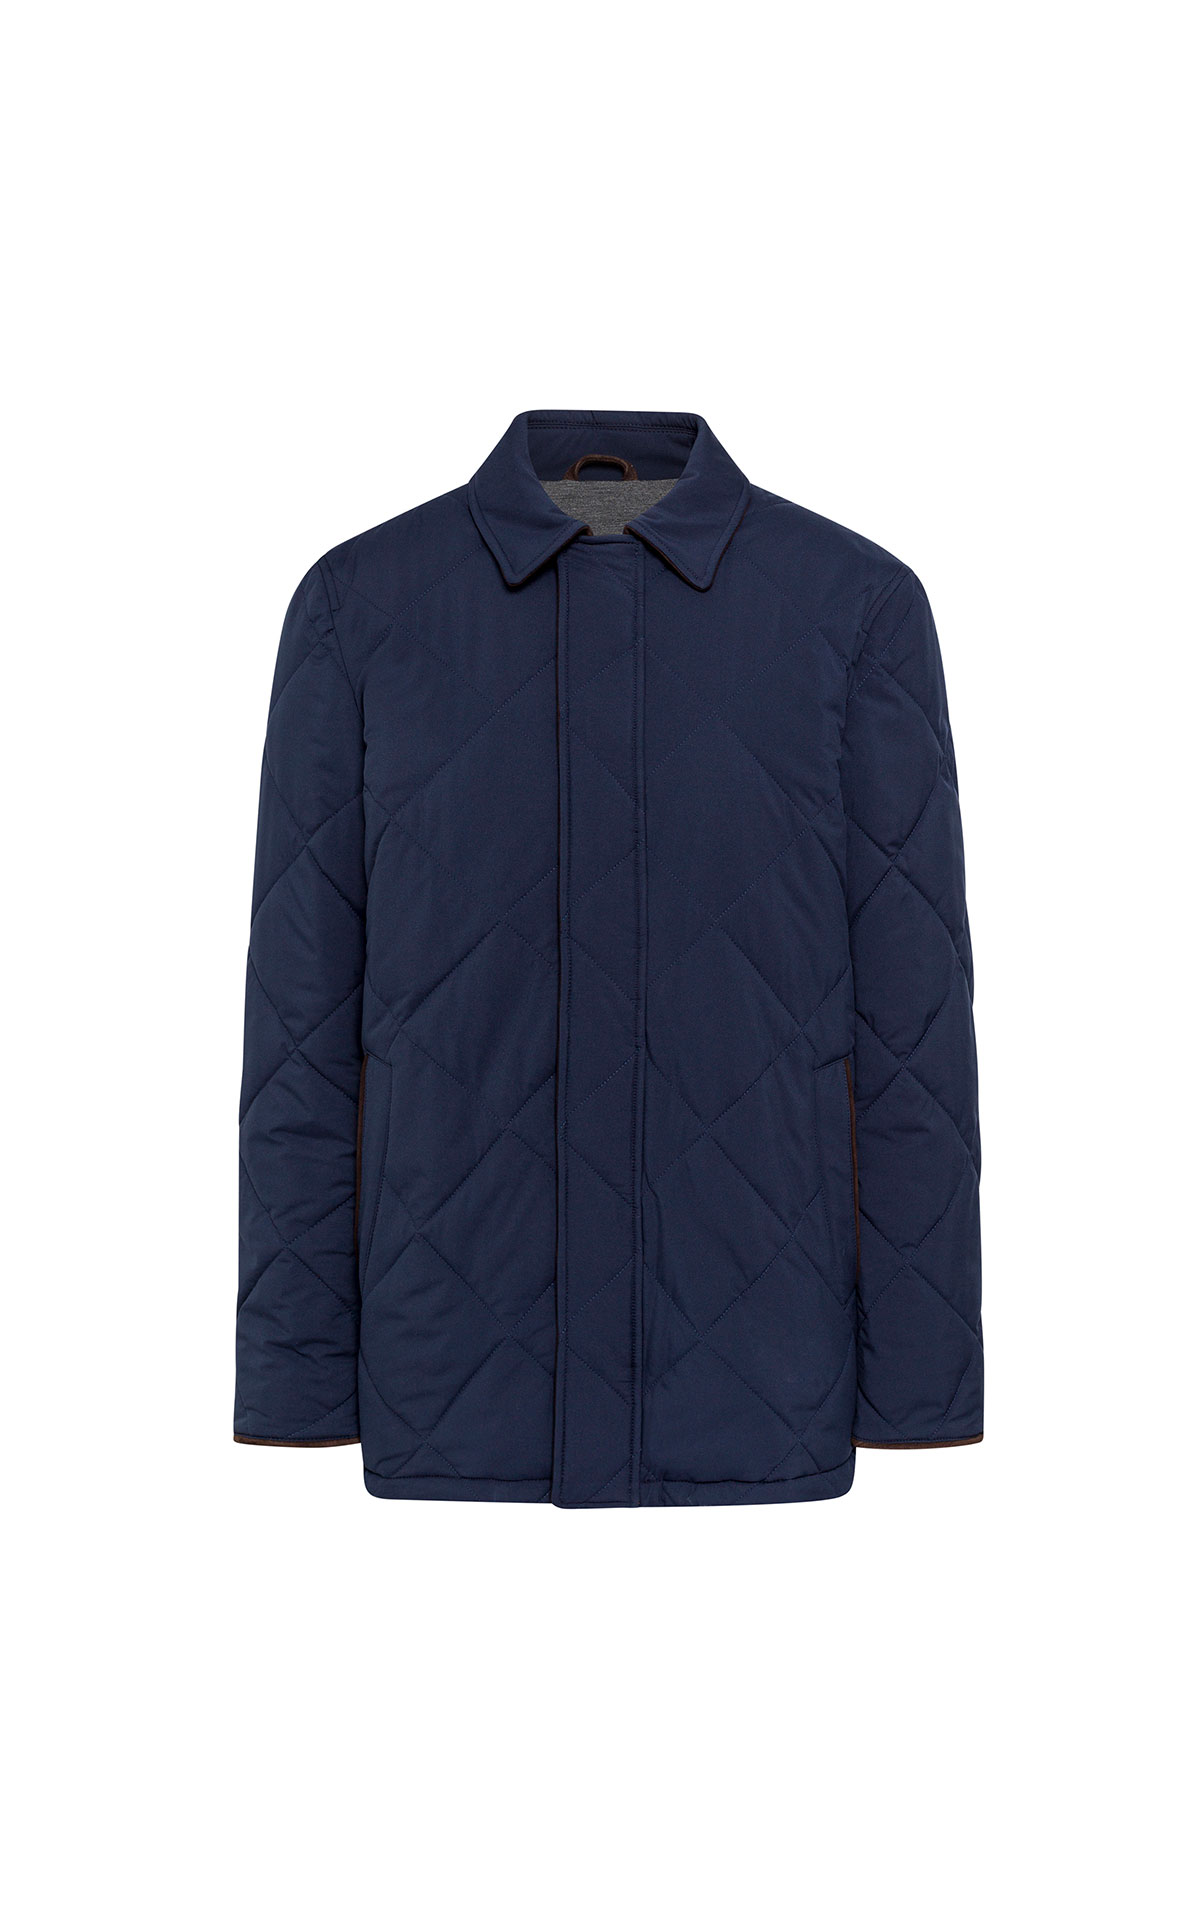 Hackett Myf horsey quilted jacket navy from Bicester Village